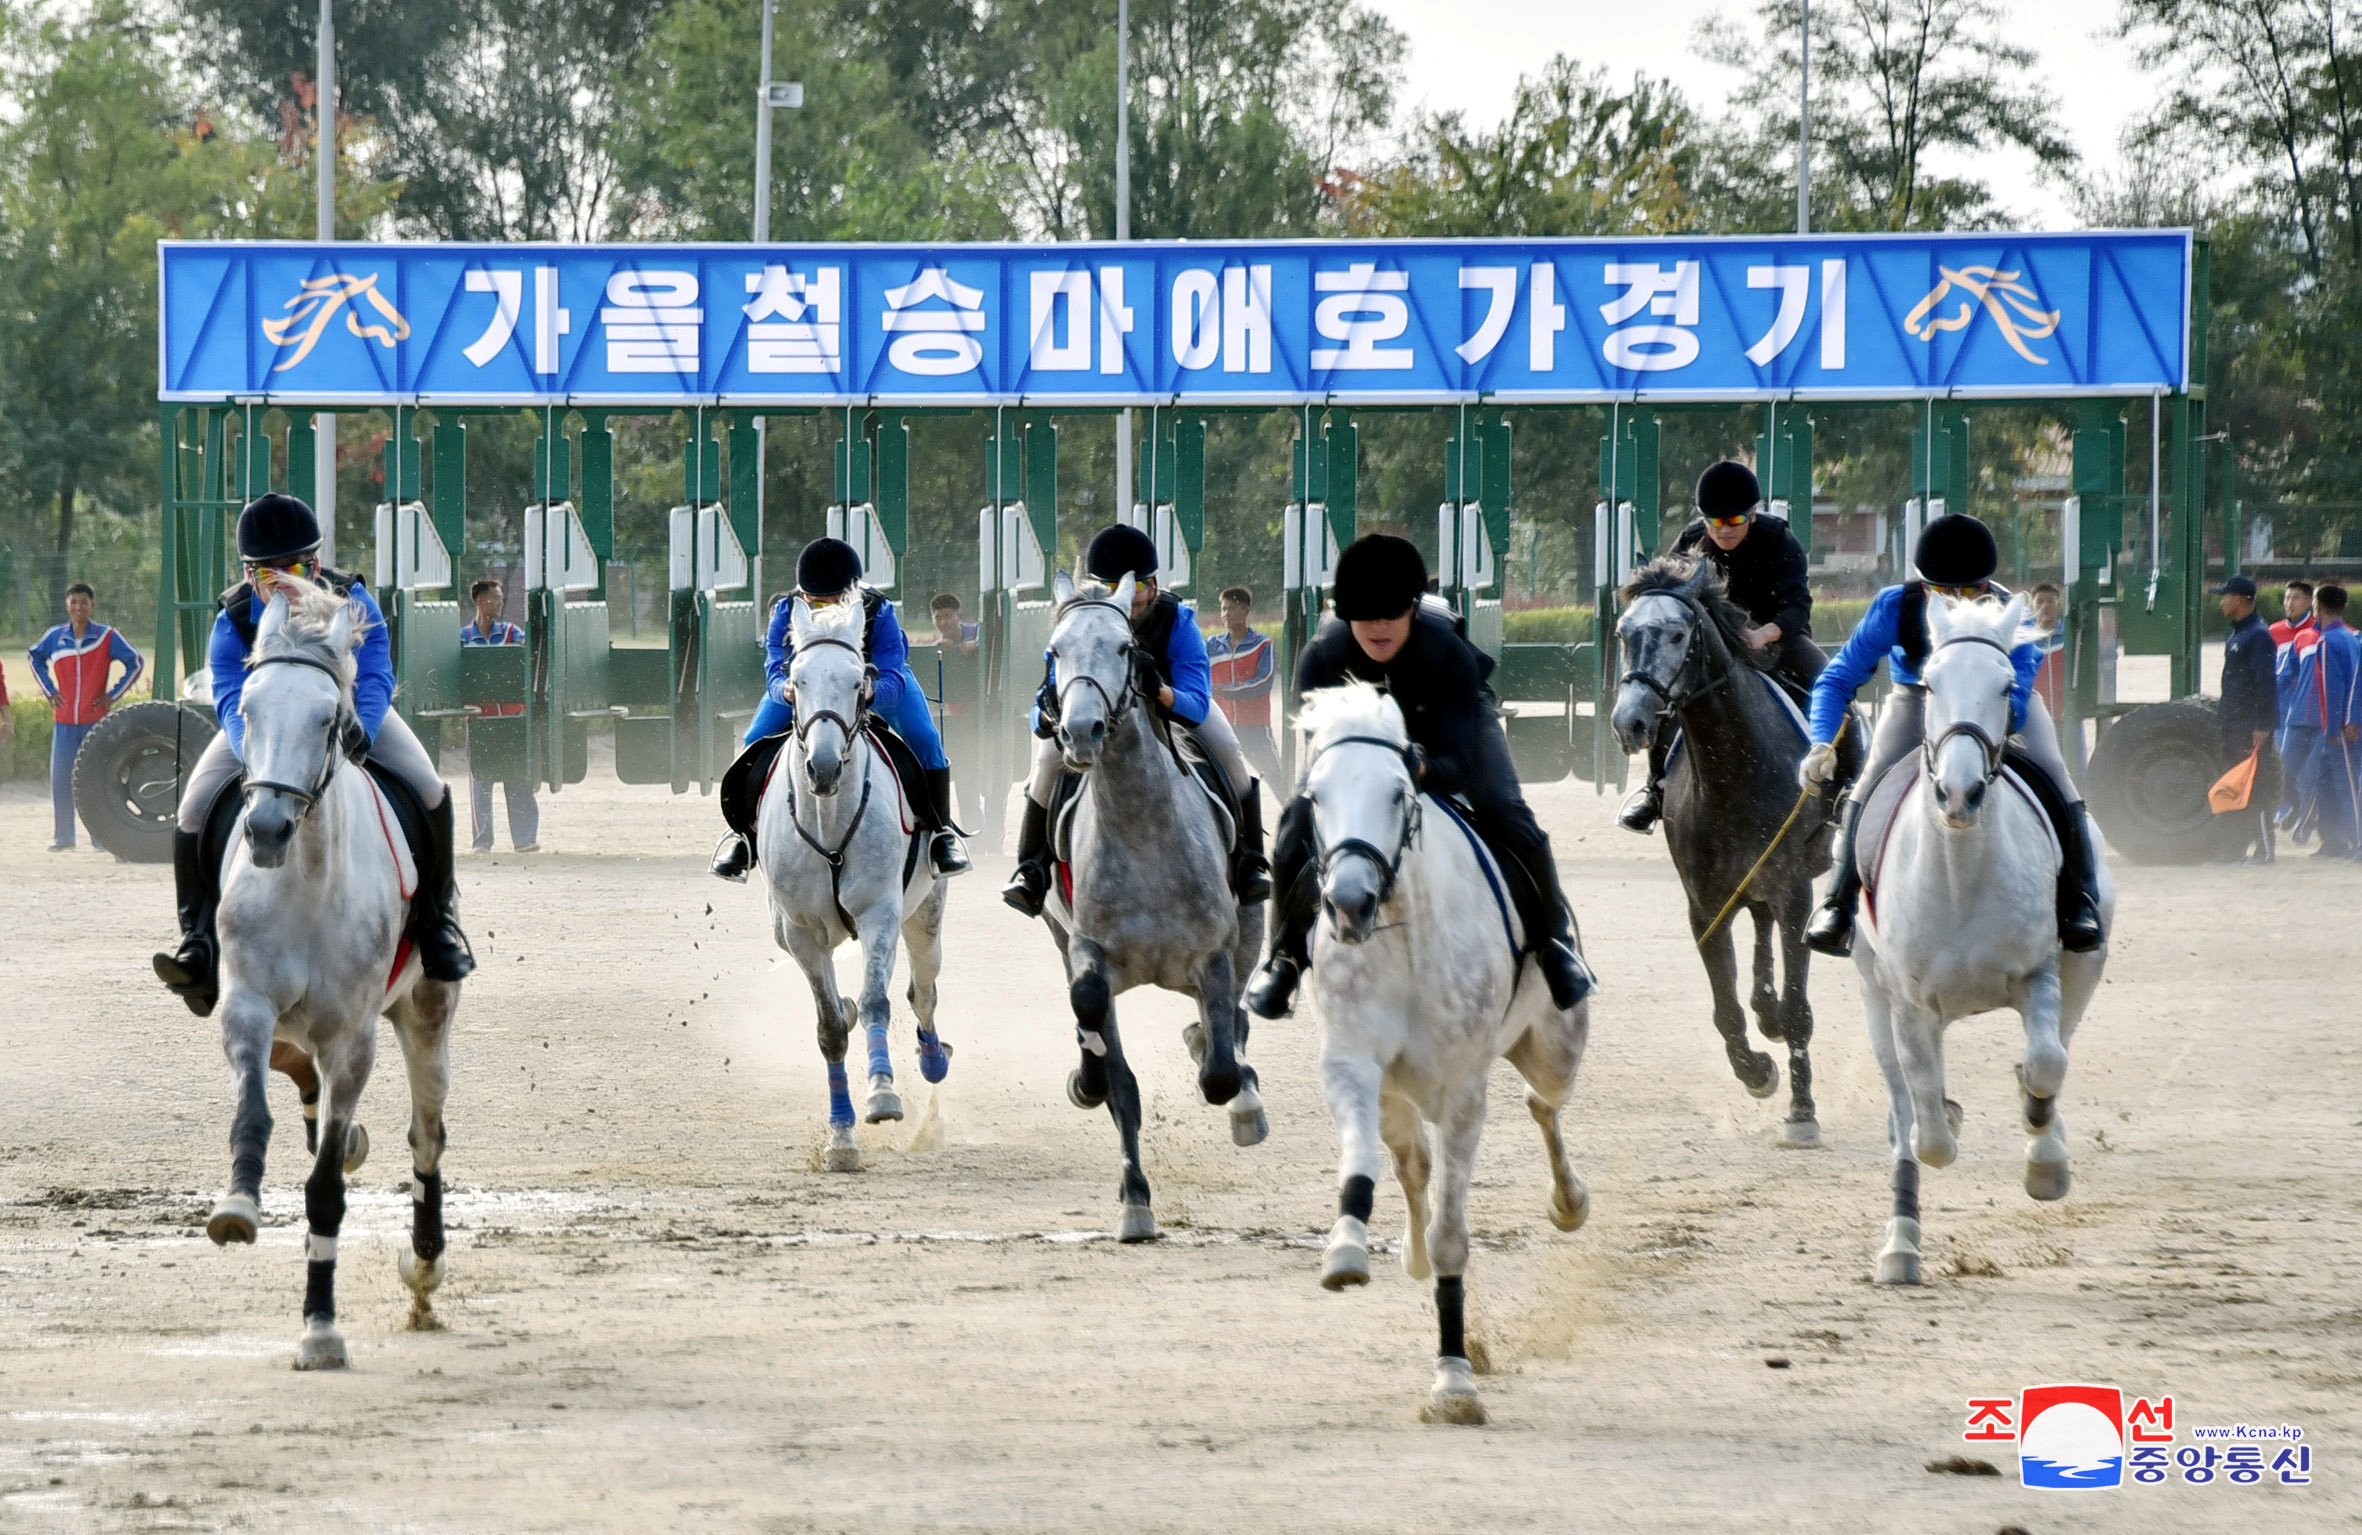 People take part in a horse riding game at the Mirim Equestrian Riding Club in Pyongyang, Oct. 15, 2017, in this picture released by North Korea's Korean Central News Agency (KCNA) in Pyongyang.